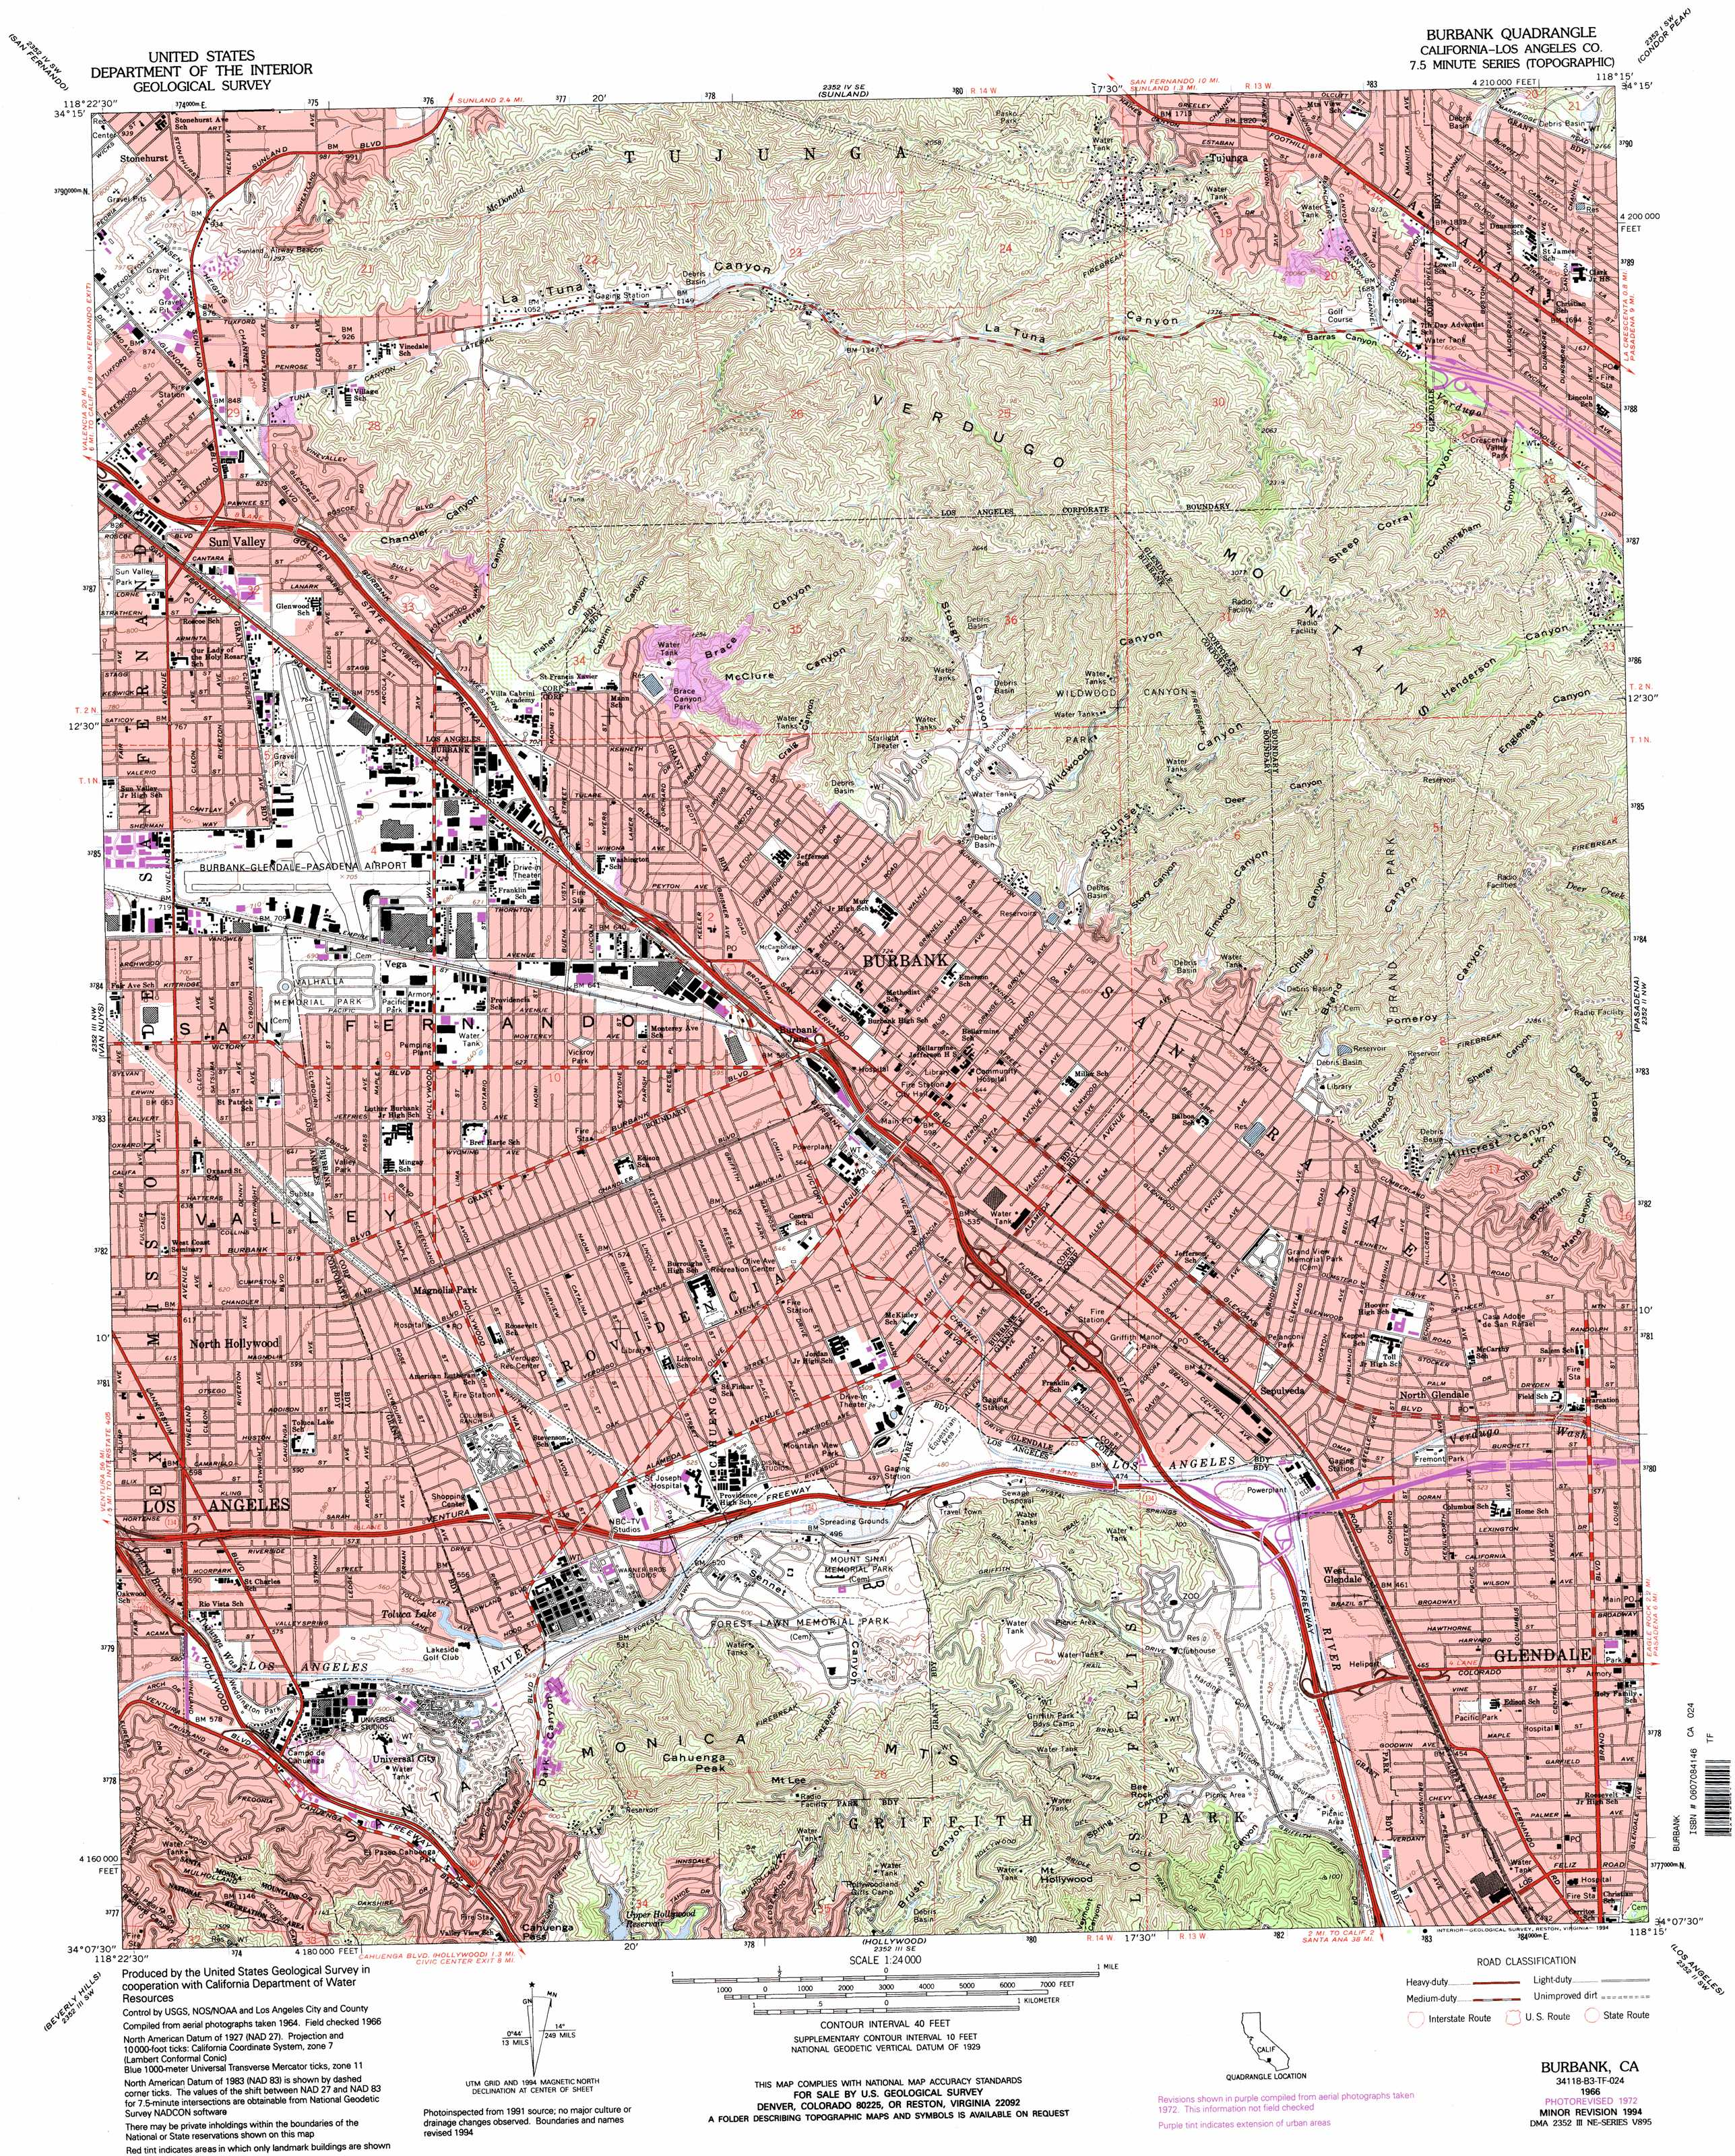 Burbank Topographic Map CA USGS Topo Quad B - Us geological survey topographic maps for sale